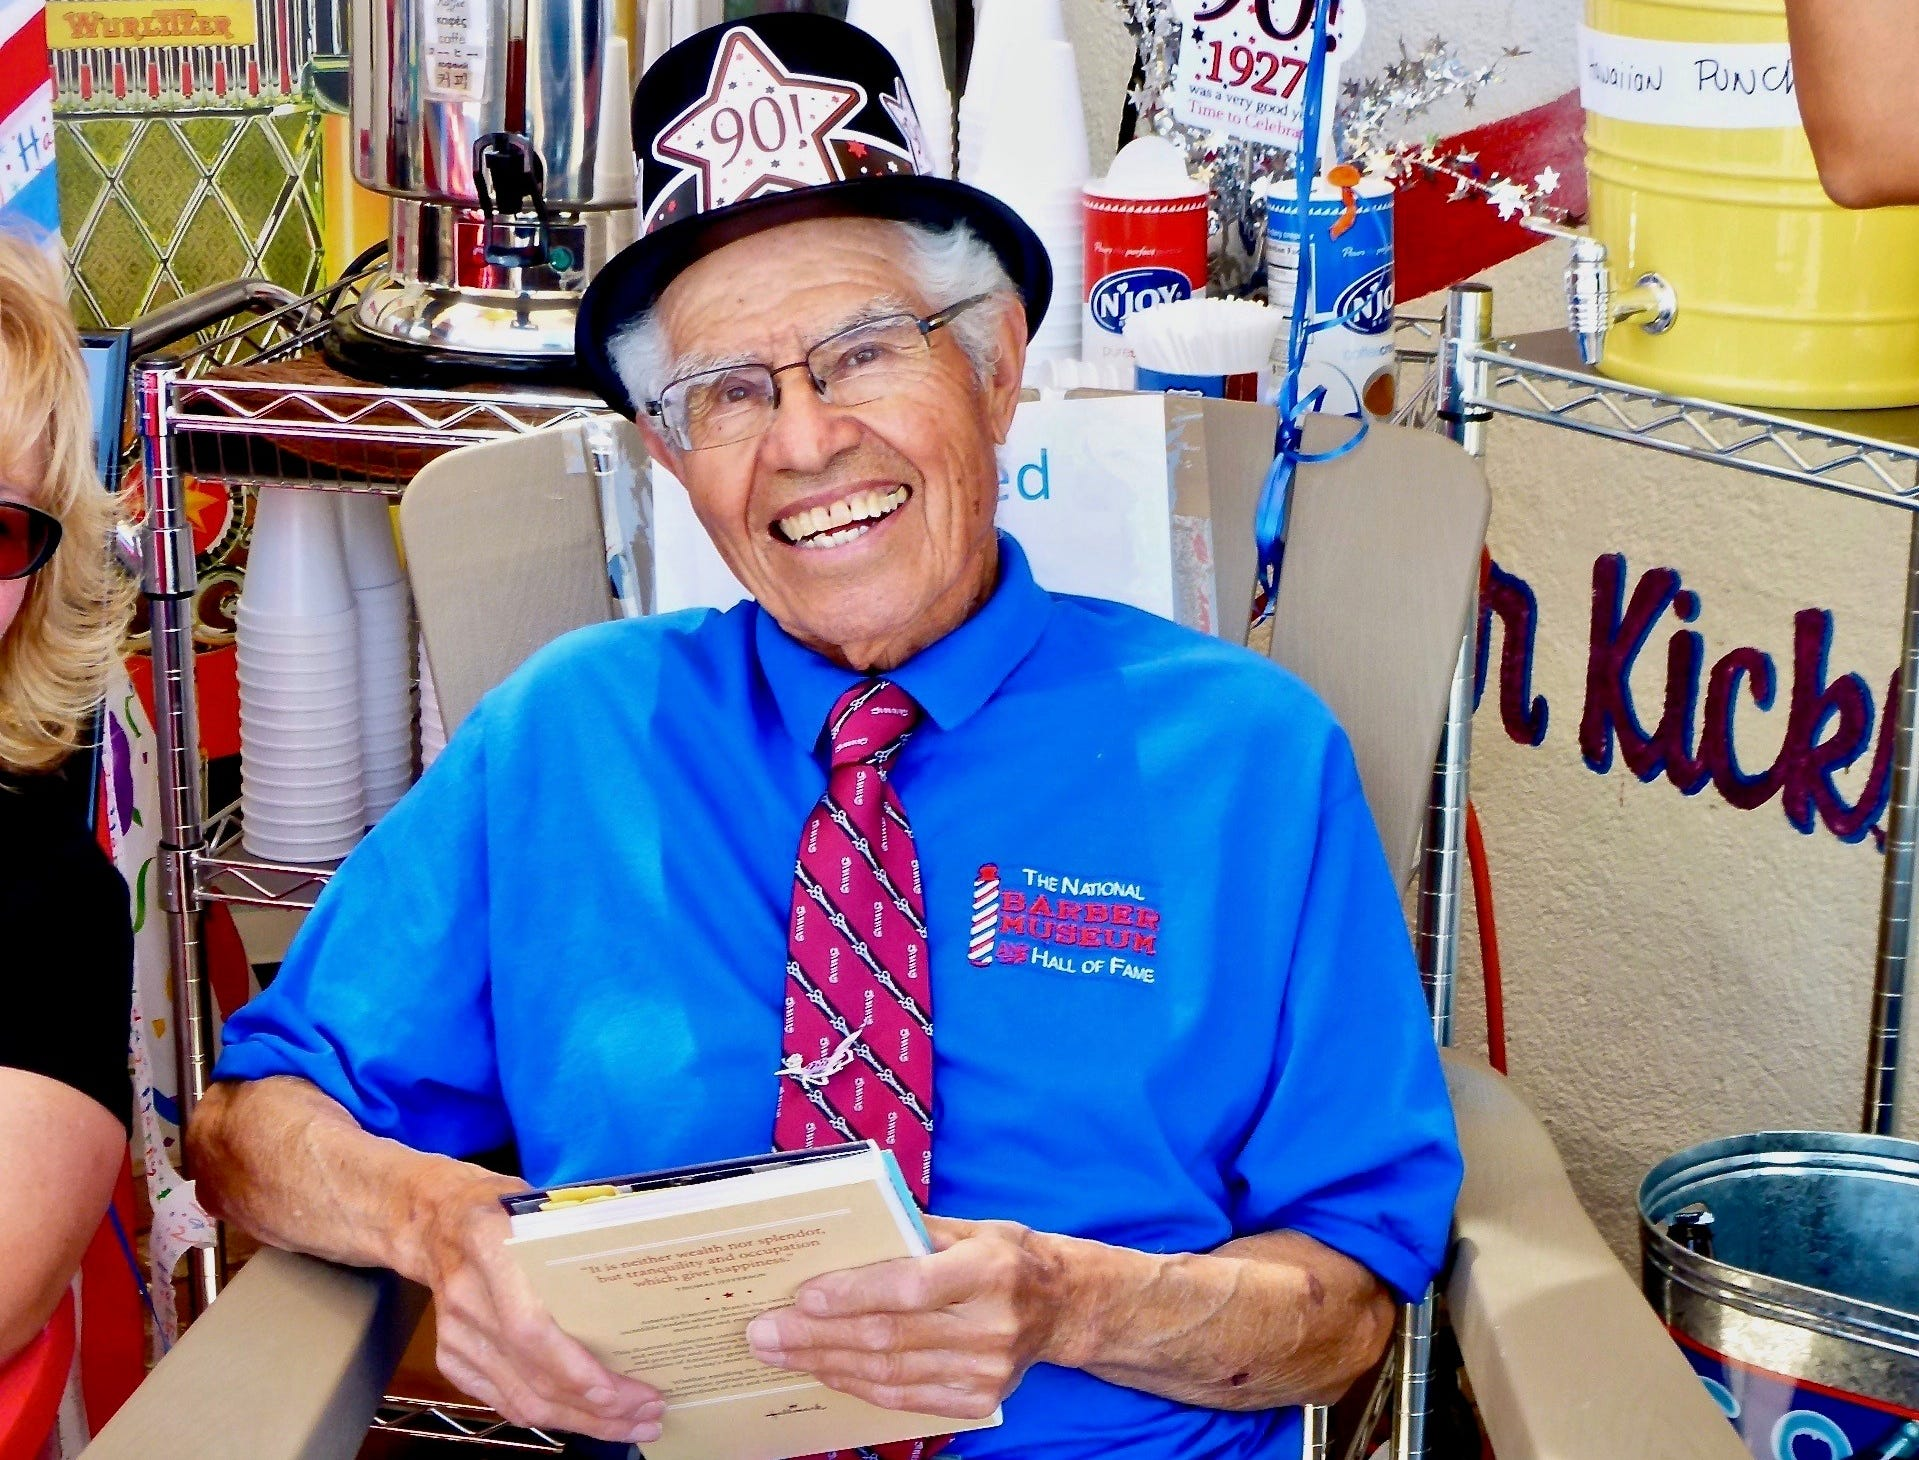 Credited with beginning the preservation movement for Route 66, Seligman's Angel Delgadillo celebrated his 90th birthday in 2017.